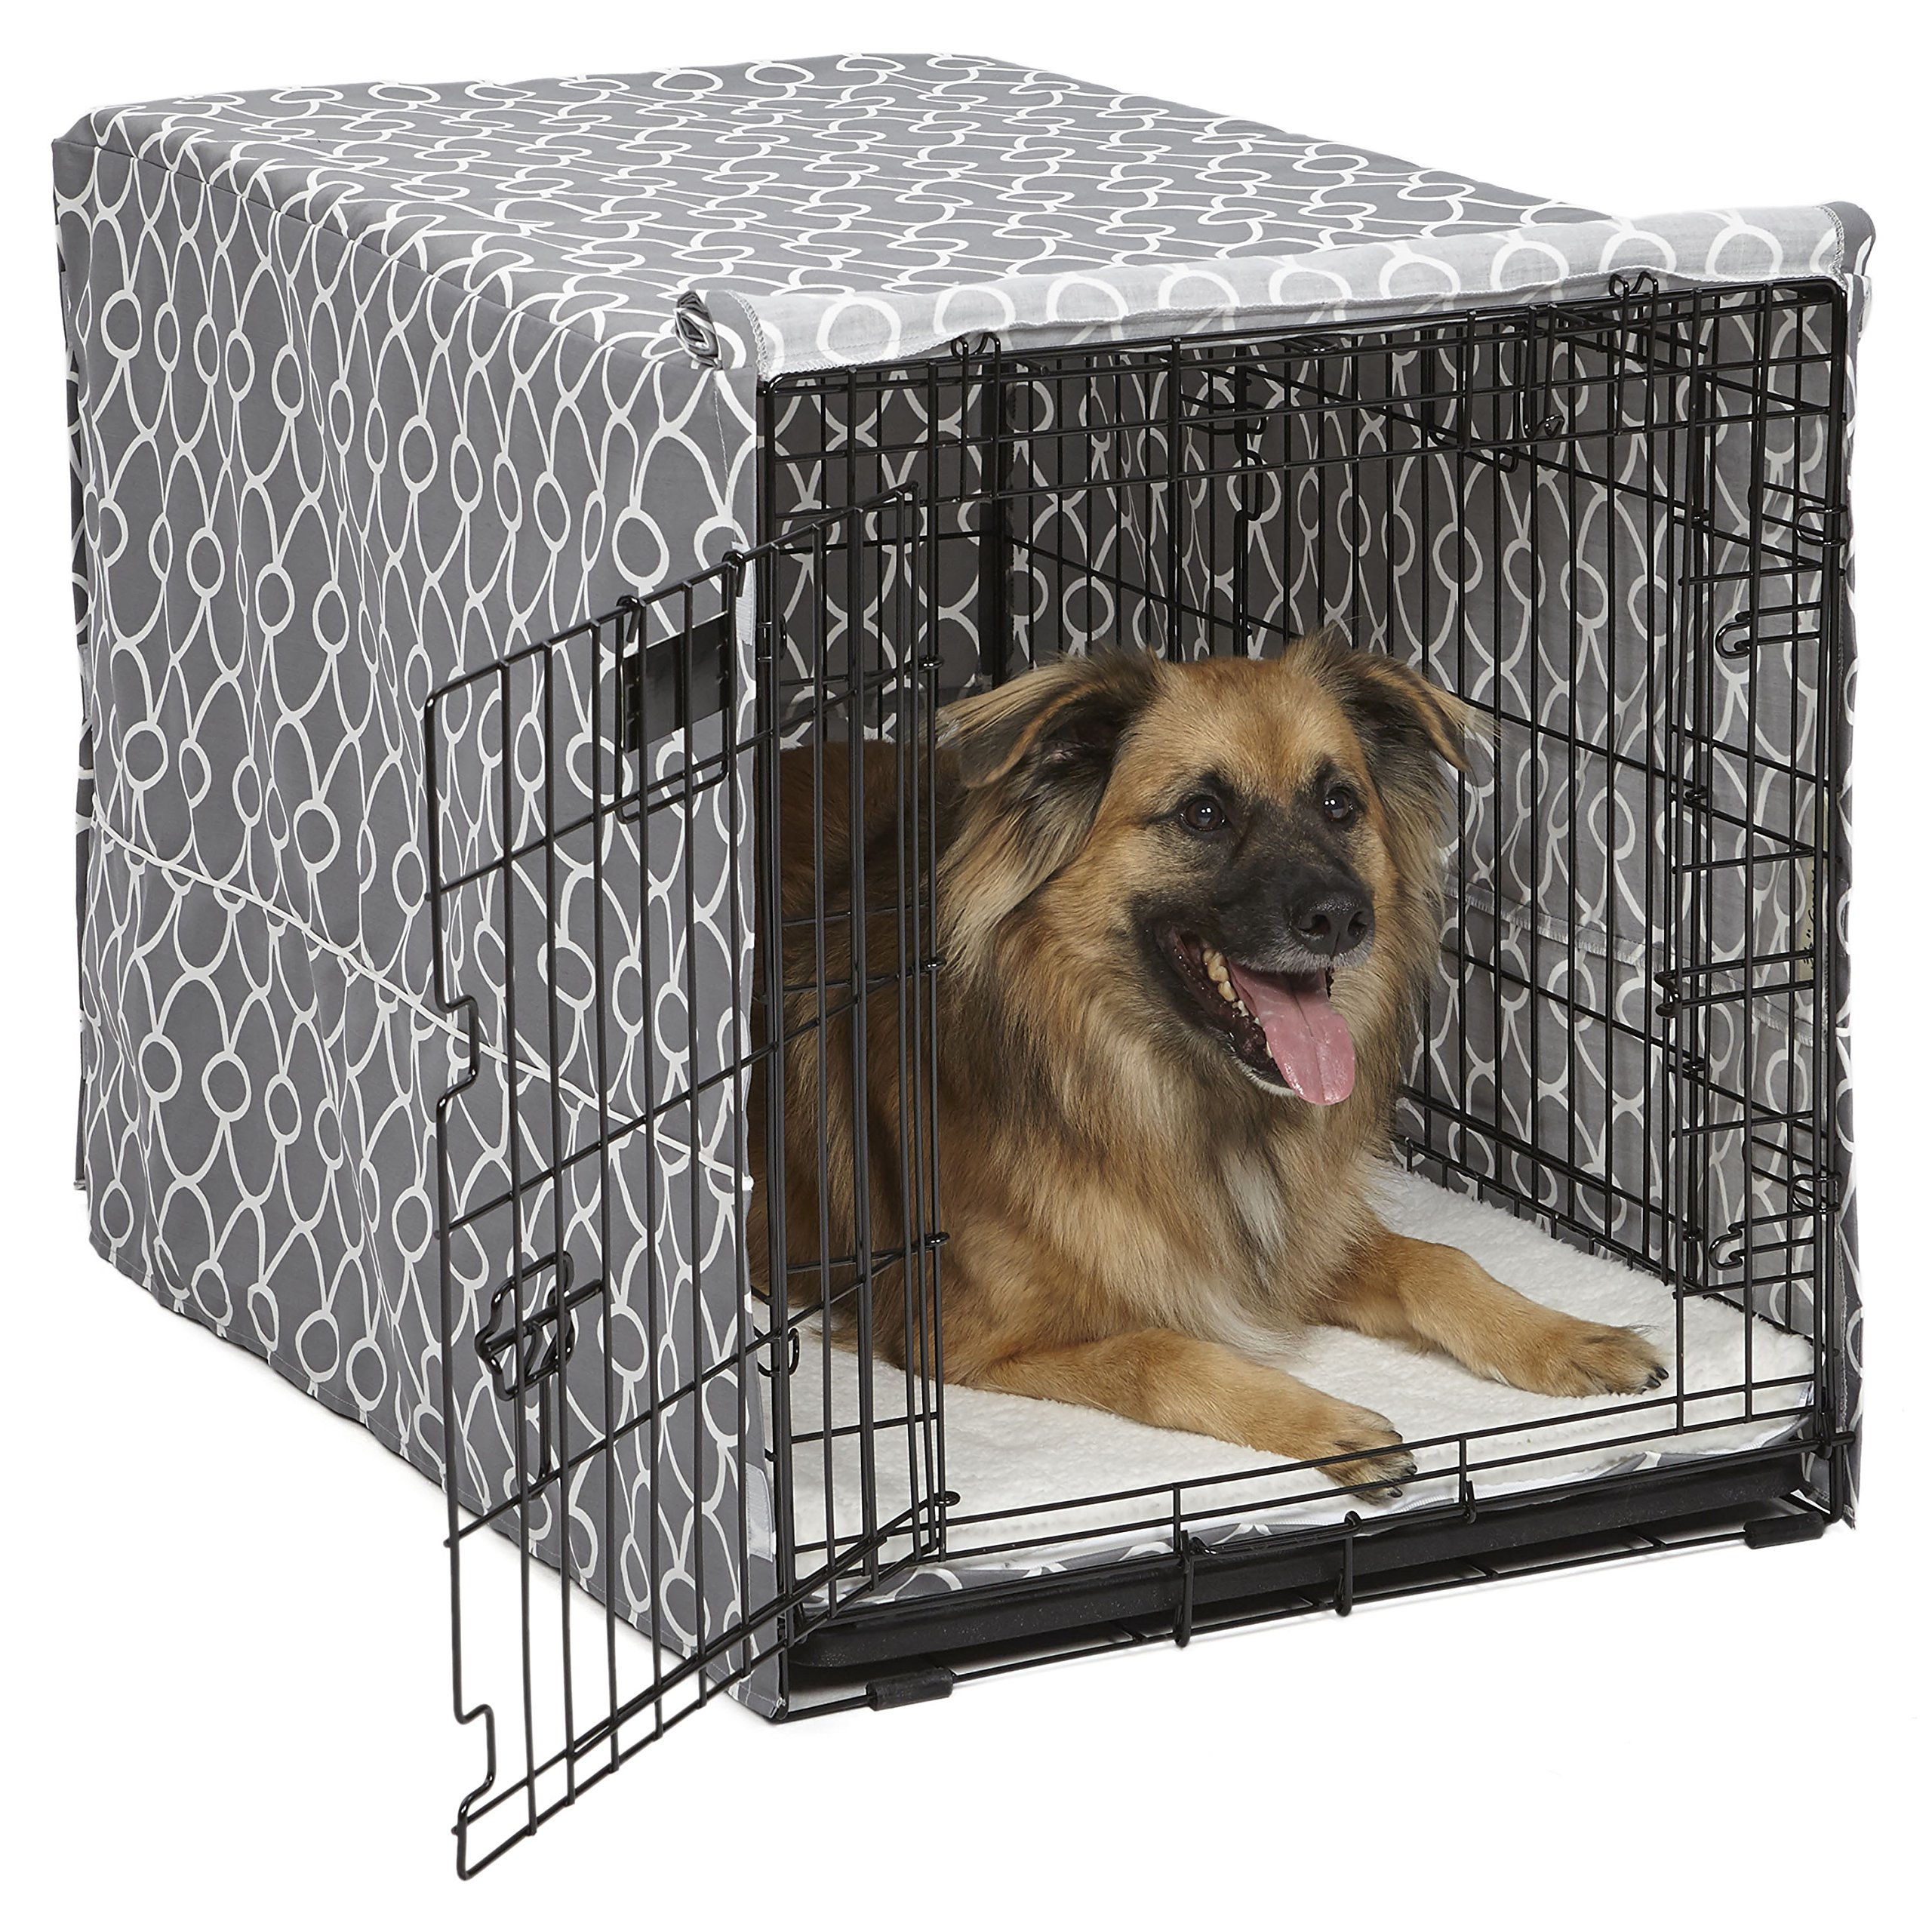 Midwest Homes for Pets Dog Crate Cover, Gray Geometric Pattern, 36-Inch by MidWest Homes for Pets